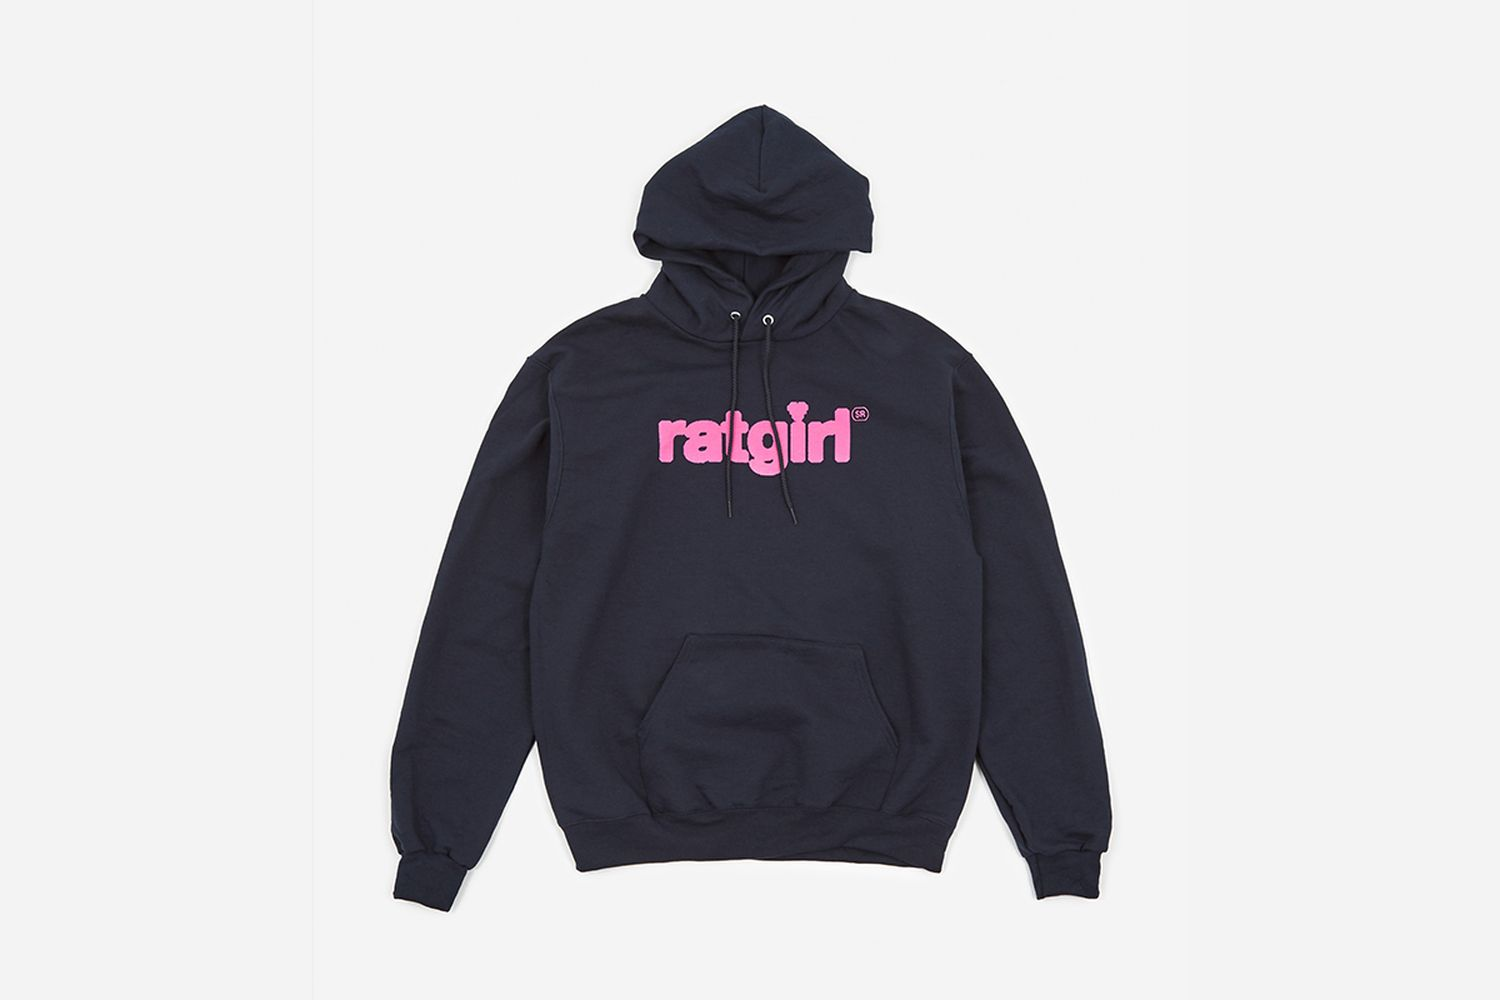 Ratgirl Heart Hooded Sweatshirt